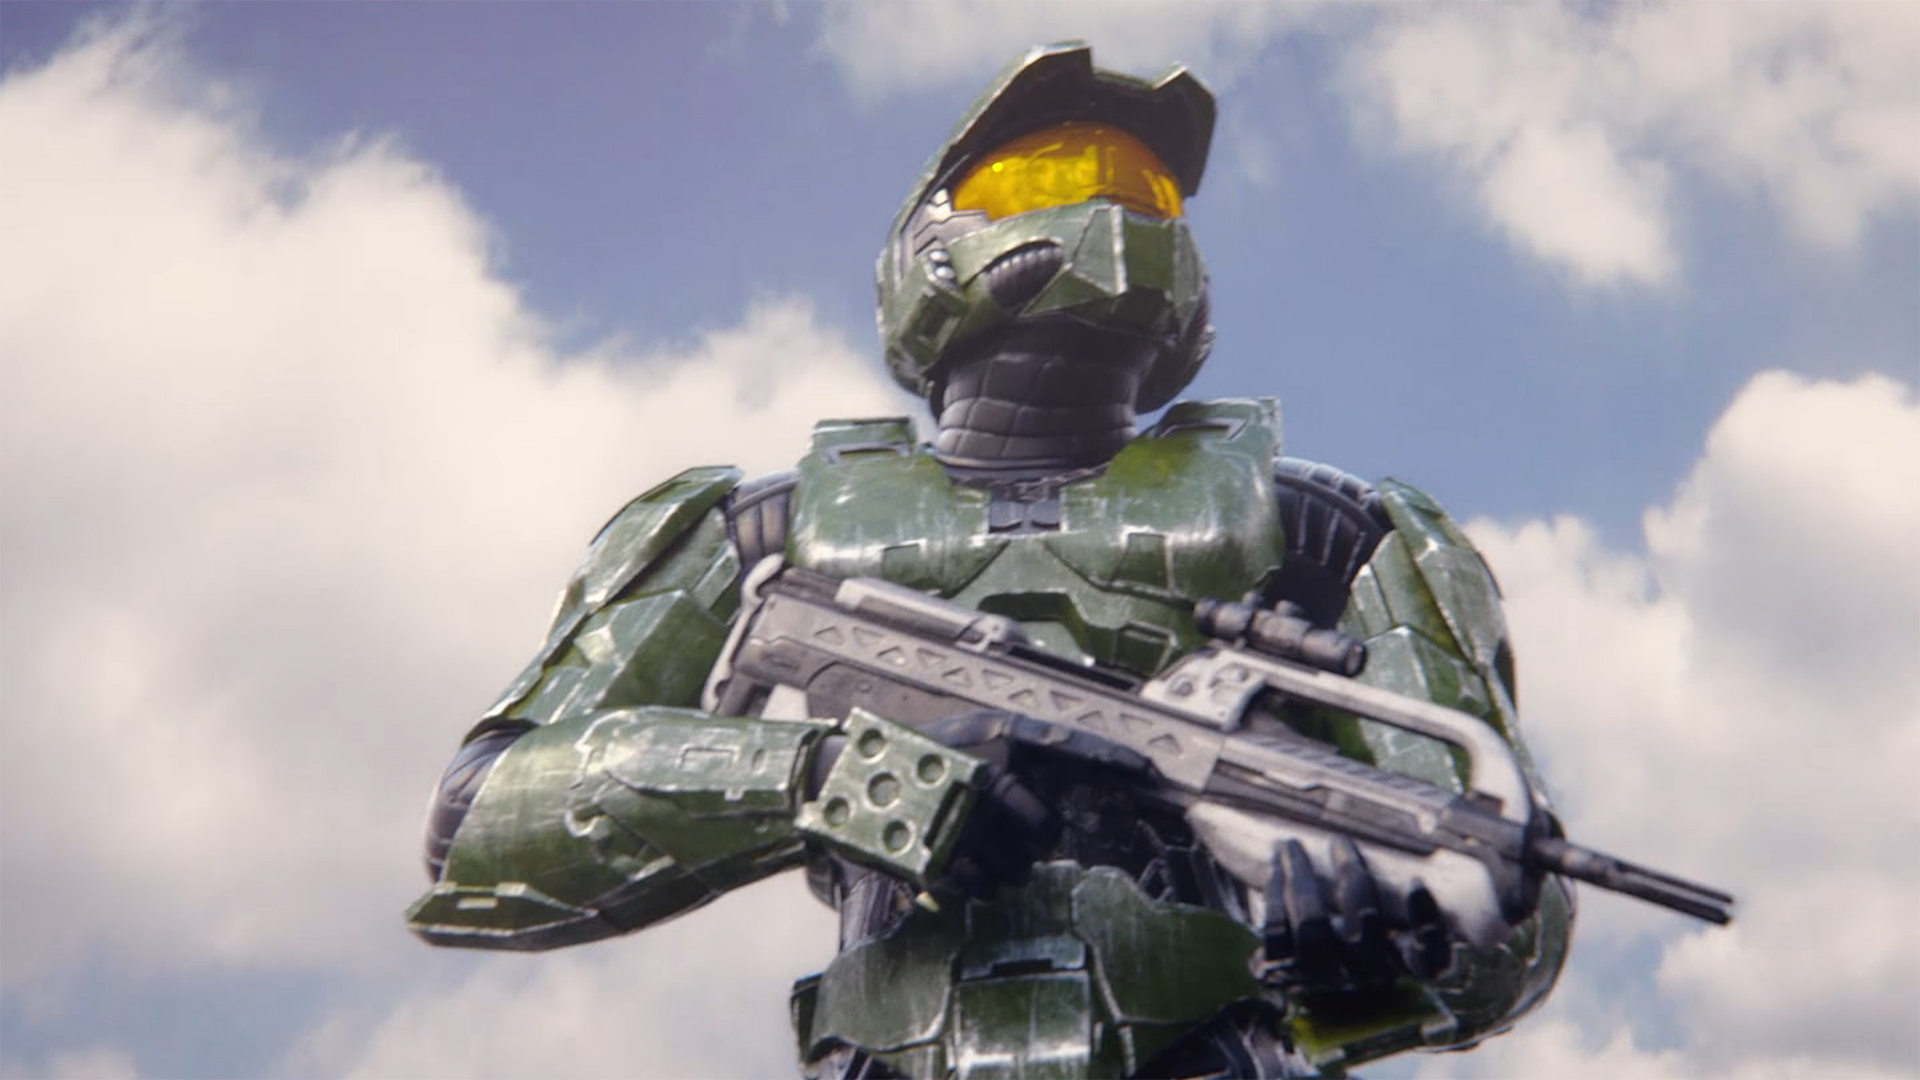 Halo-Master-Chief-Collection-2020_Halo2Anniversary_Cinematic_12_NoWatermark_1920x1080